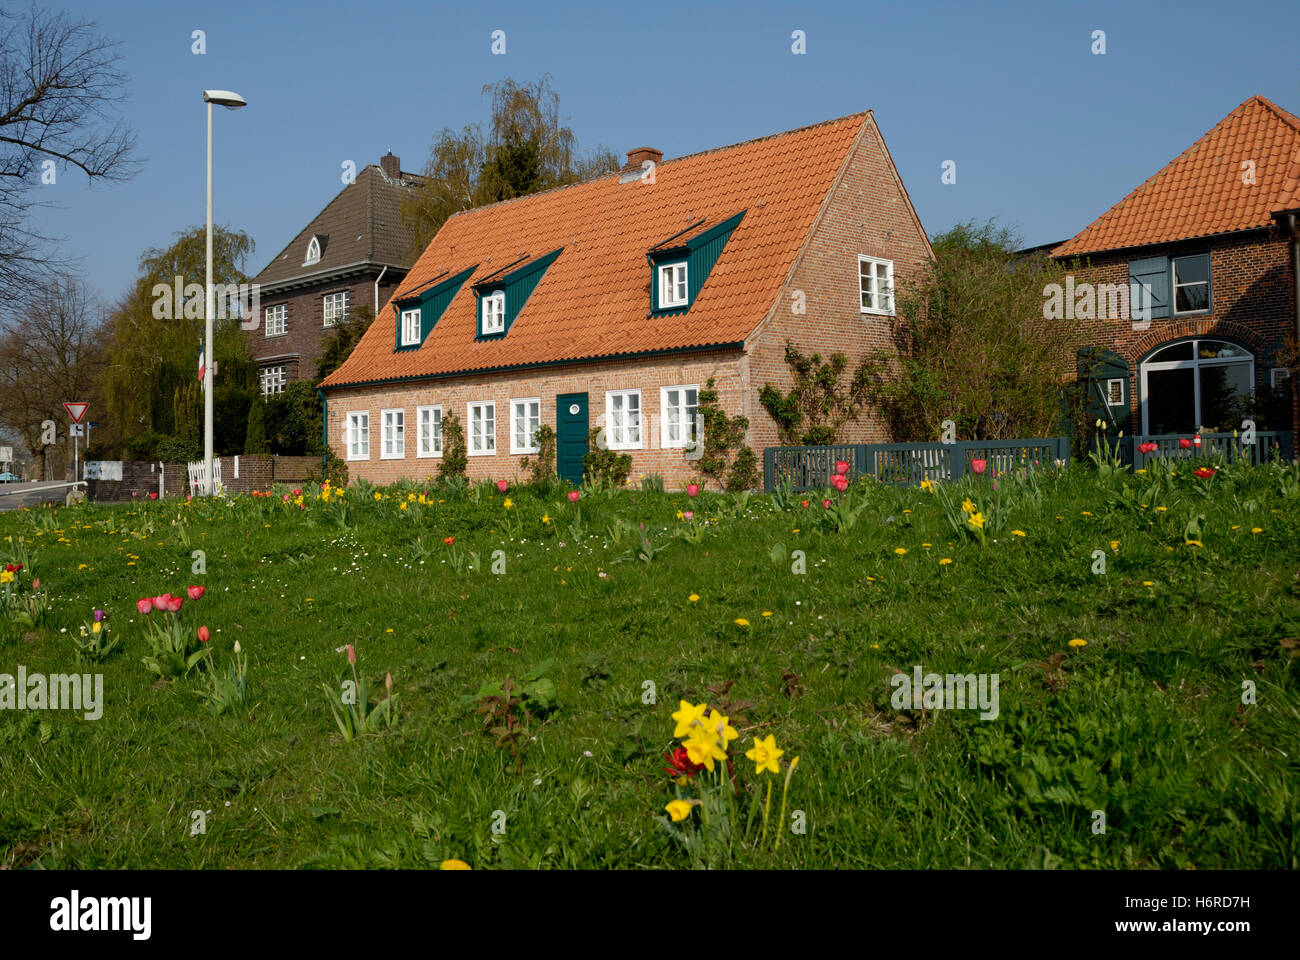 brick house in holtenau - Stock Image